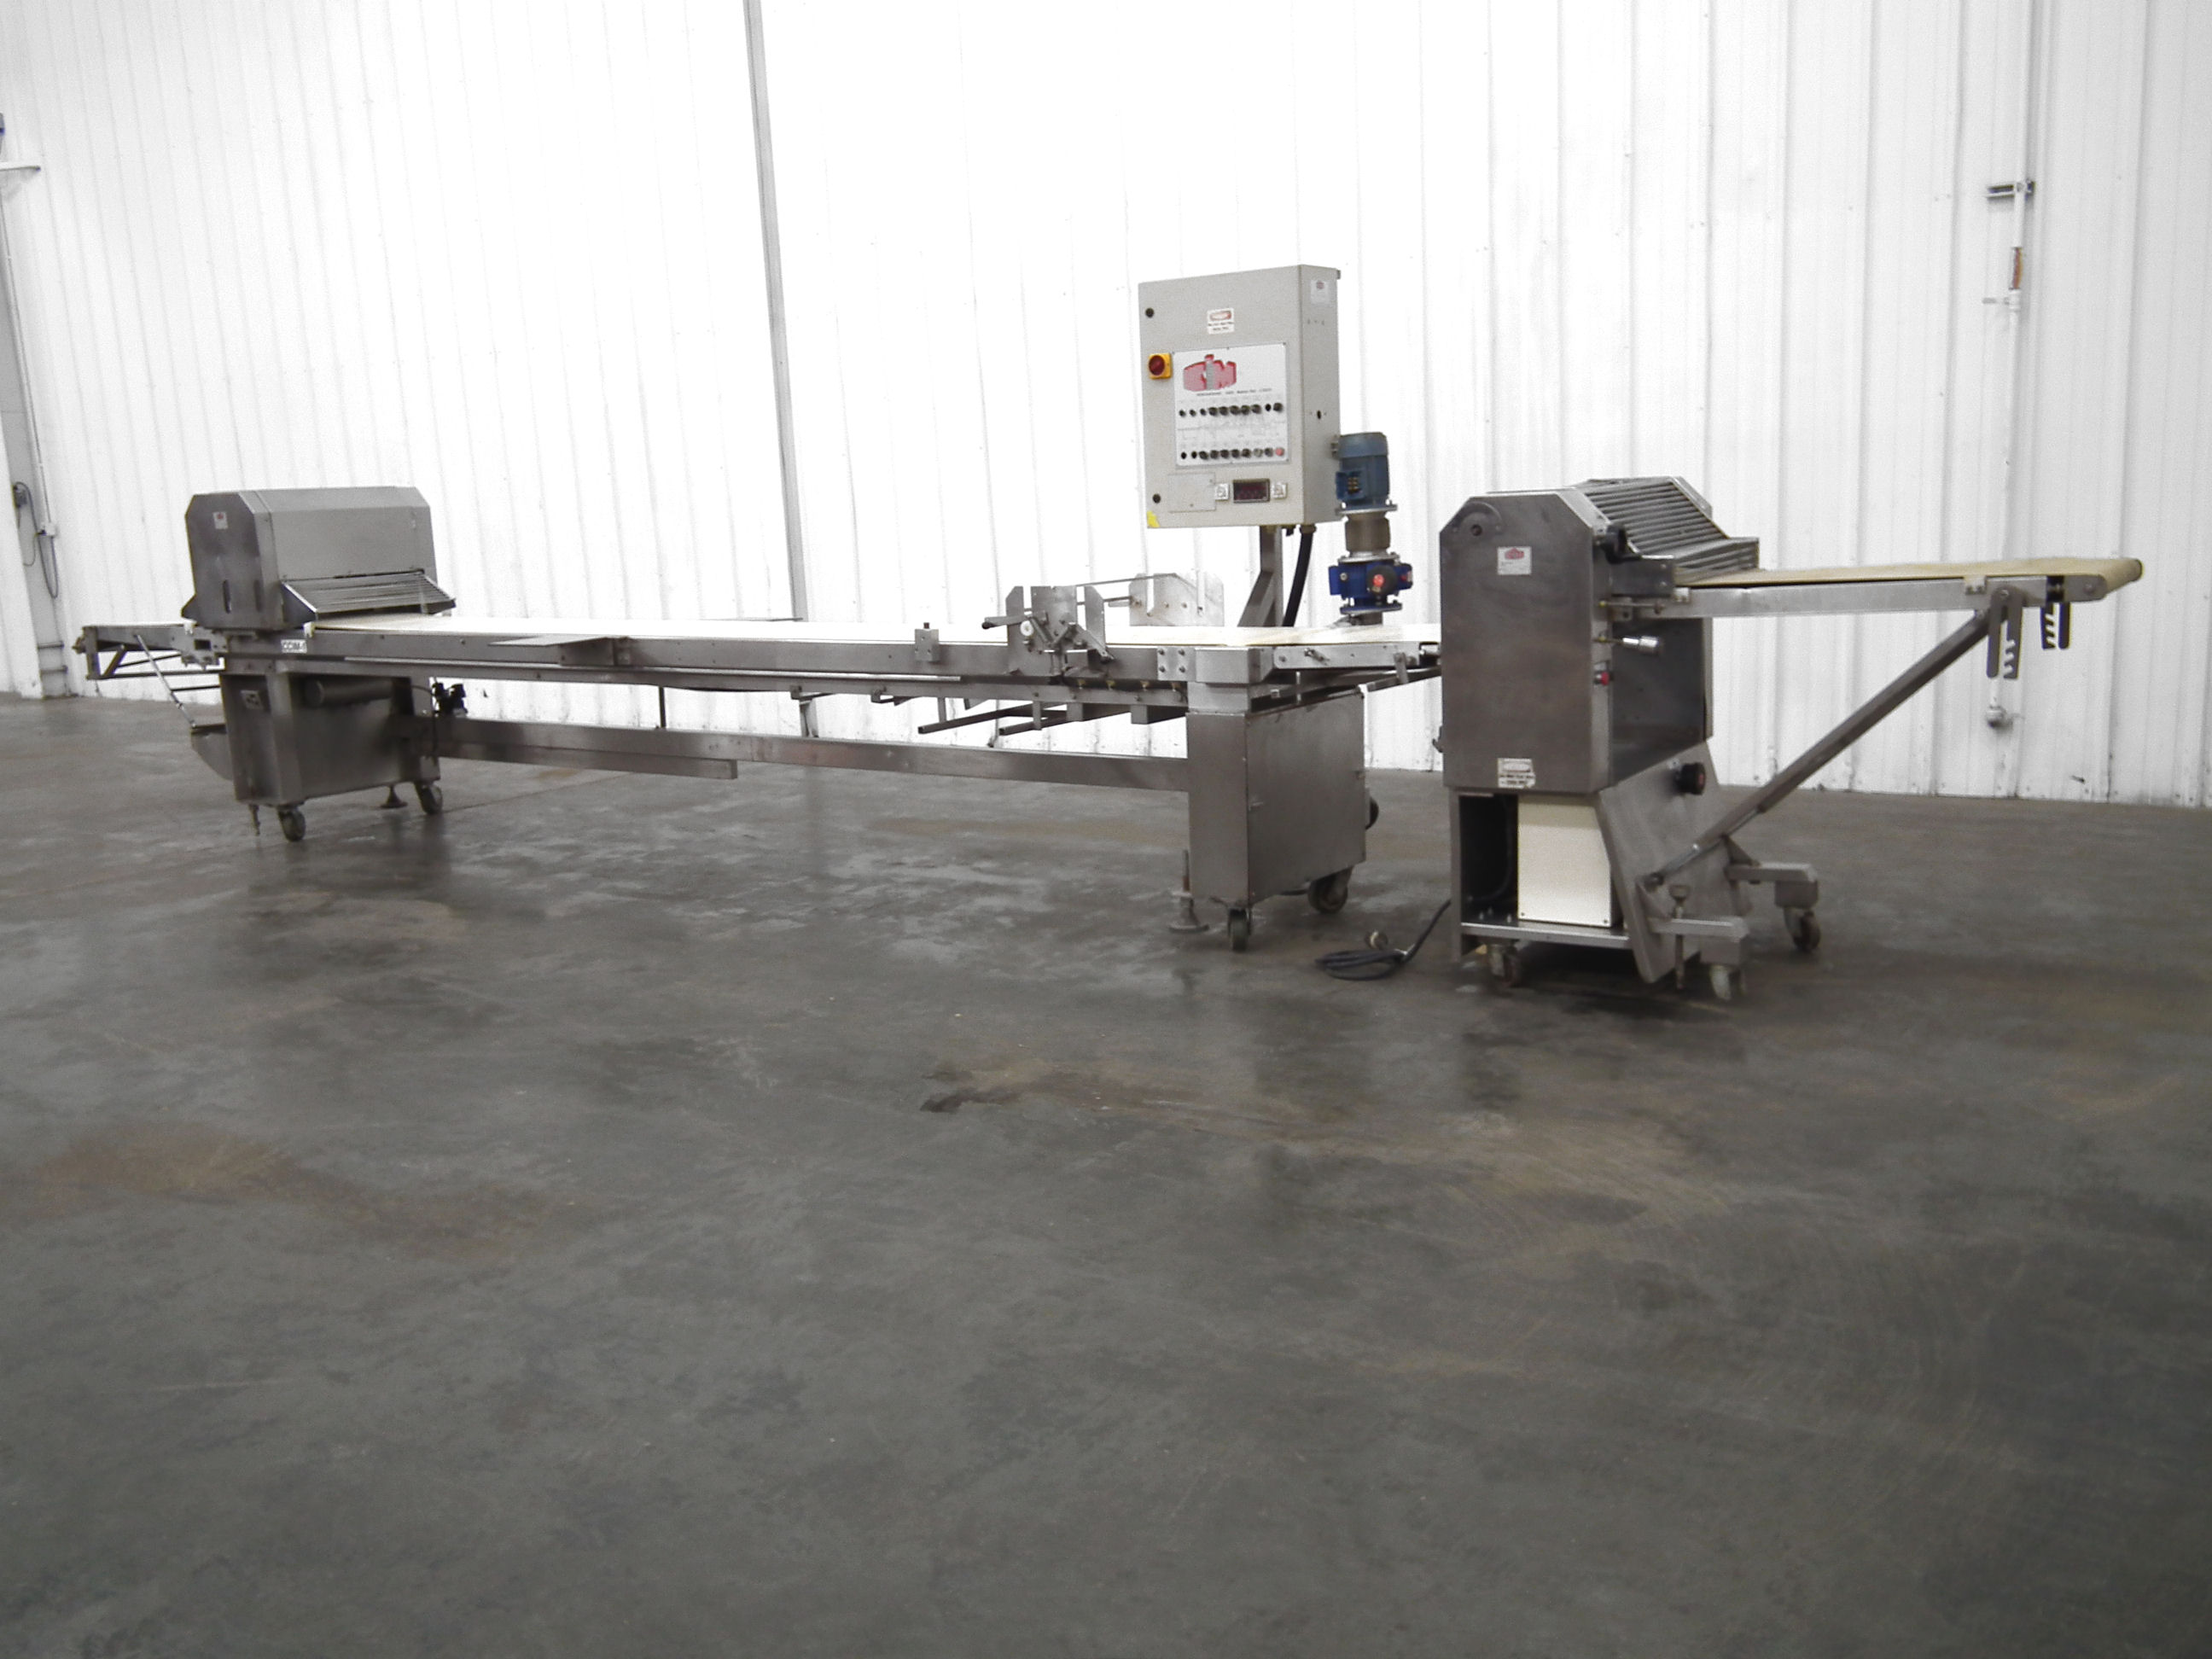 CIM Maxima 165 Dough Sheeter Guillotine 28 In Wide A7948 - Image 3 of 11